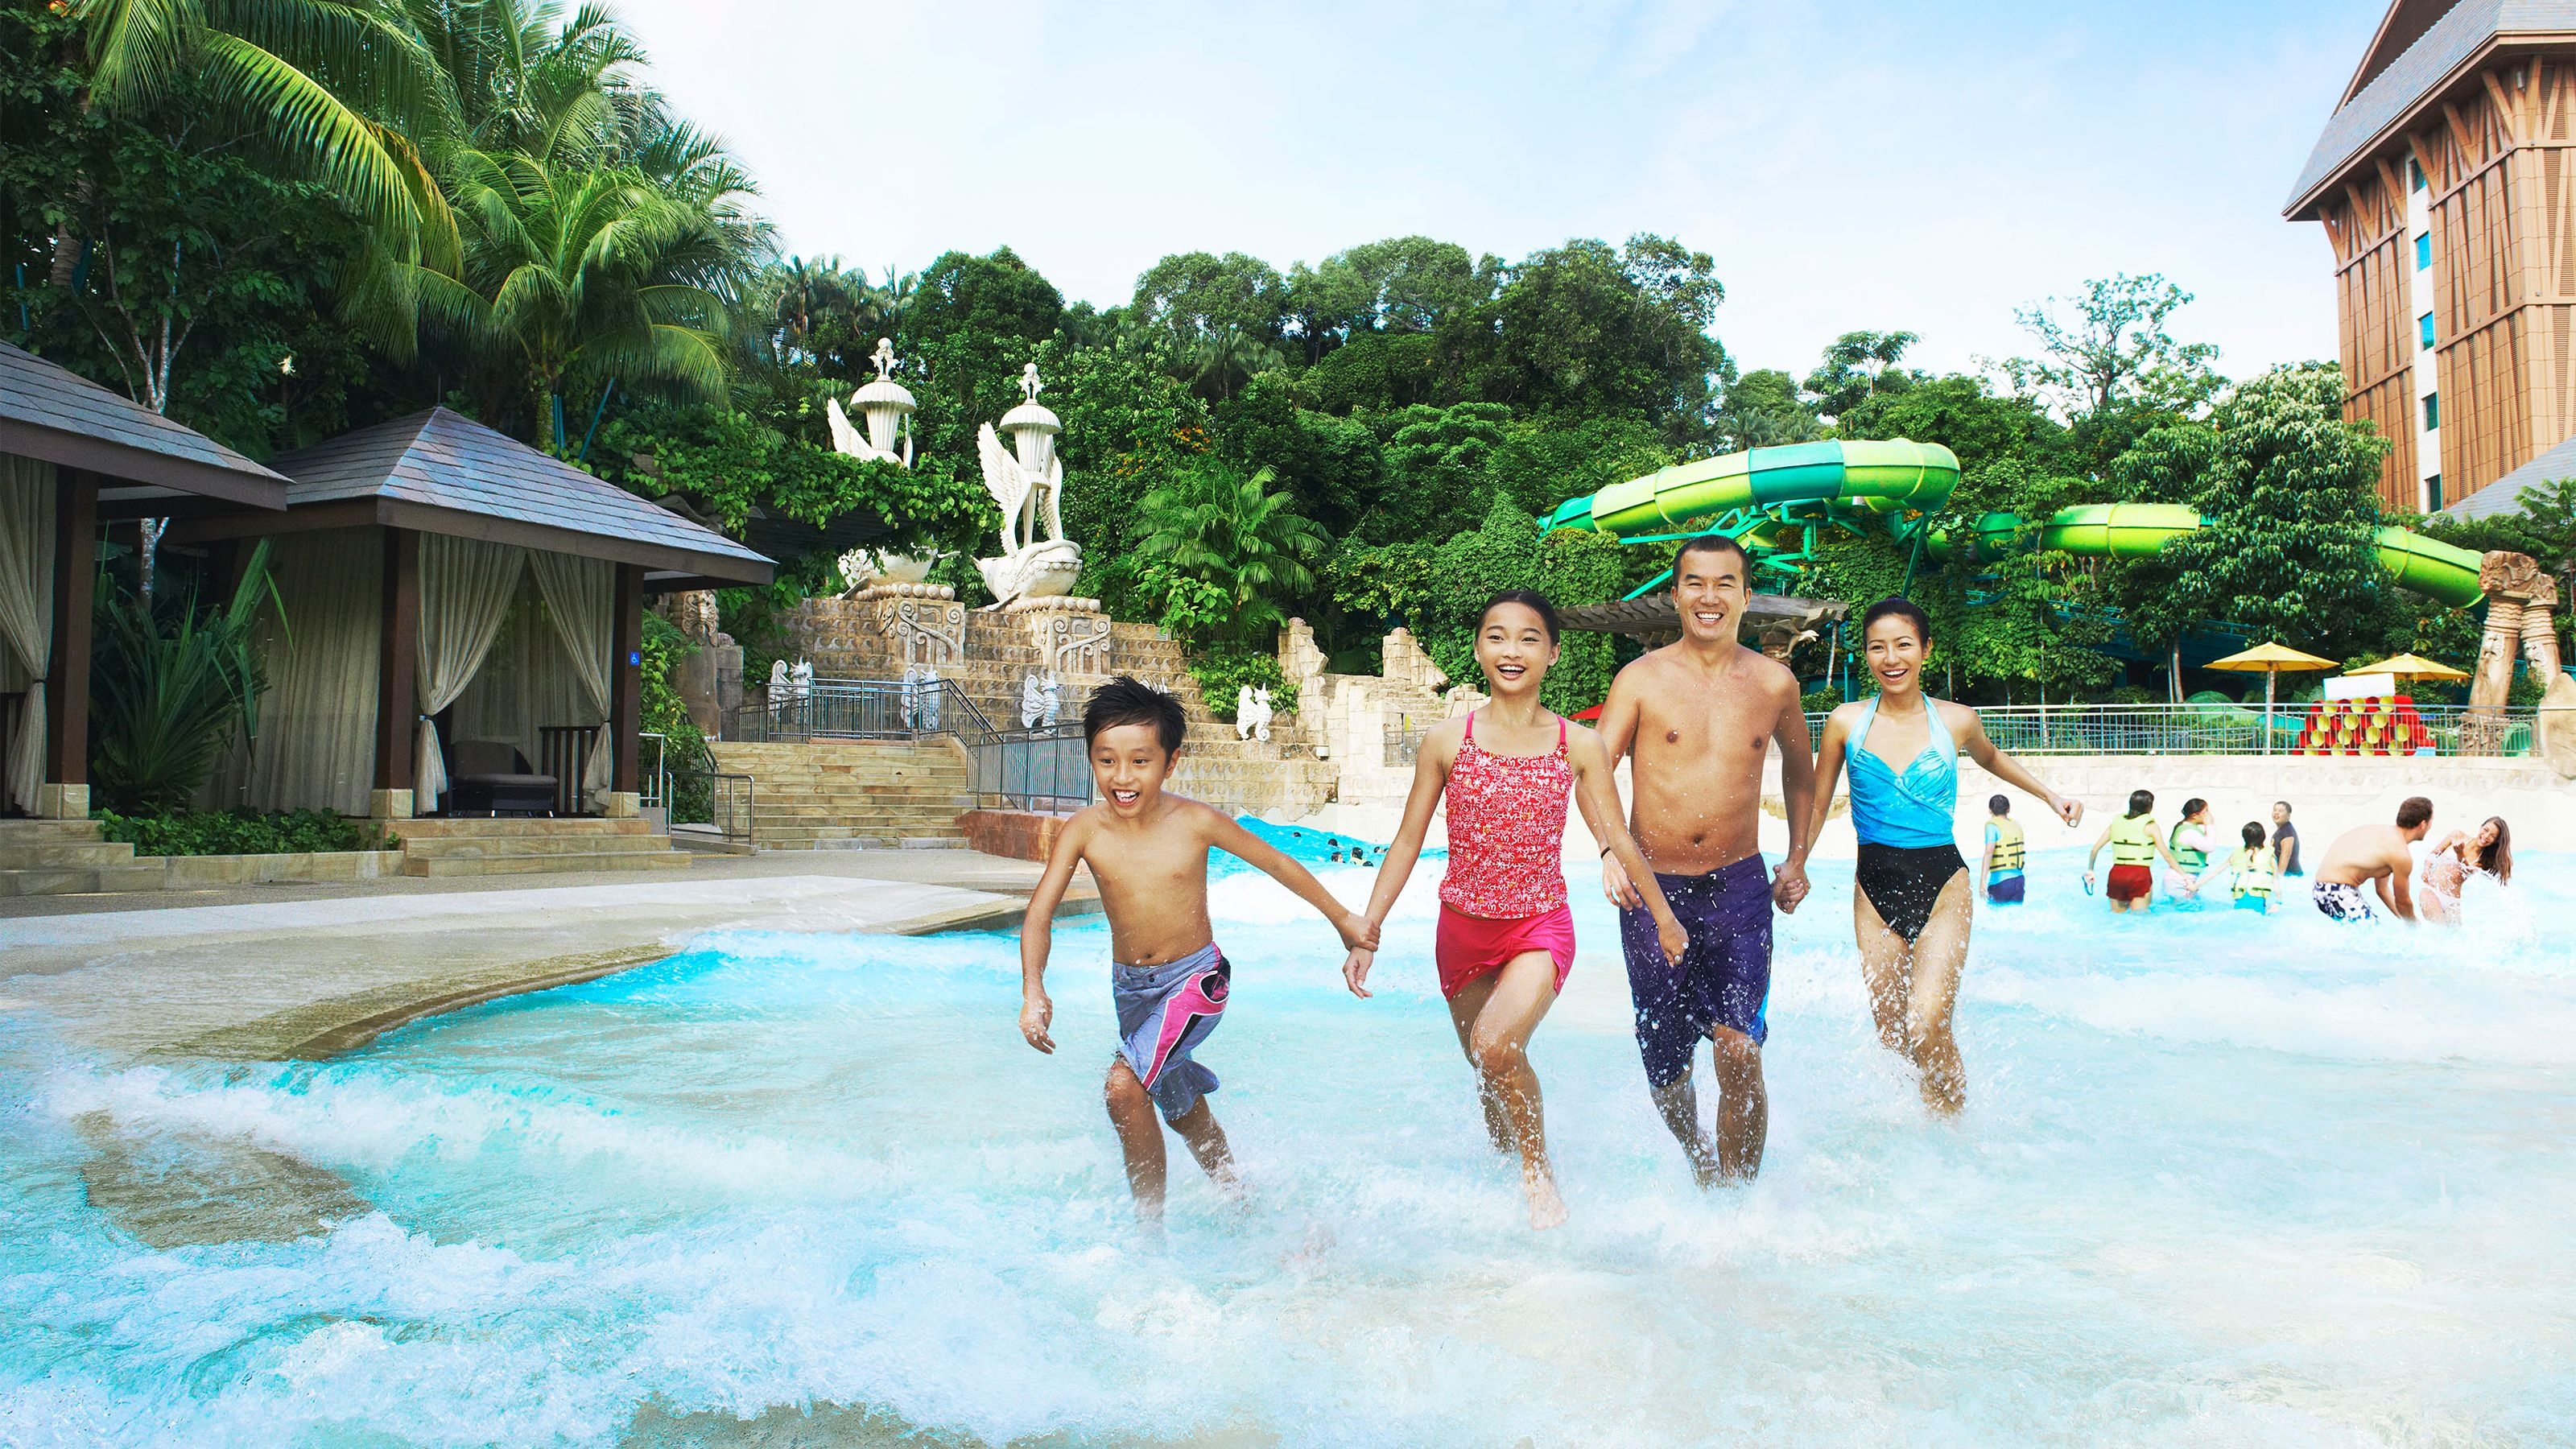 Adventure Cove WaterparkTM Ticket